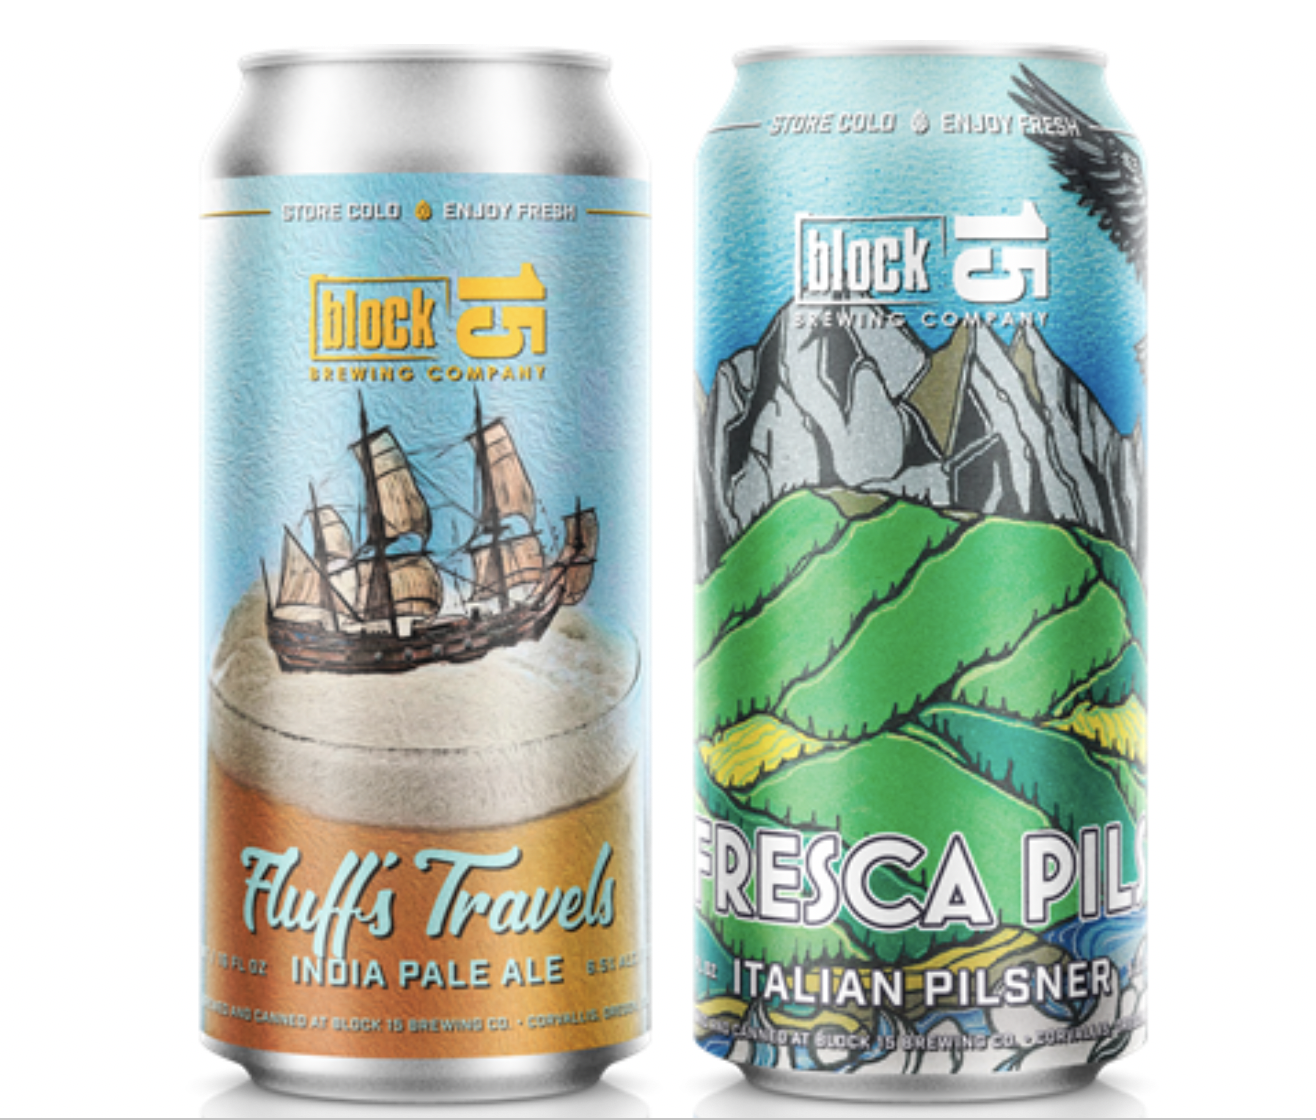 Block 15 Brewing Fluff's Travels and Fresca Pils